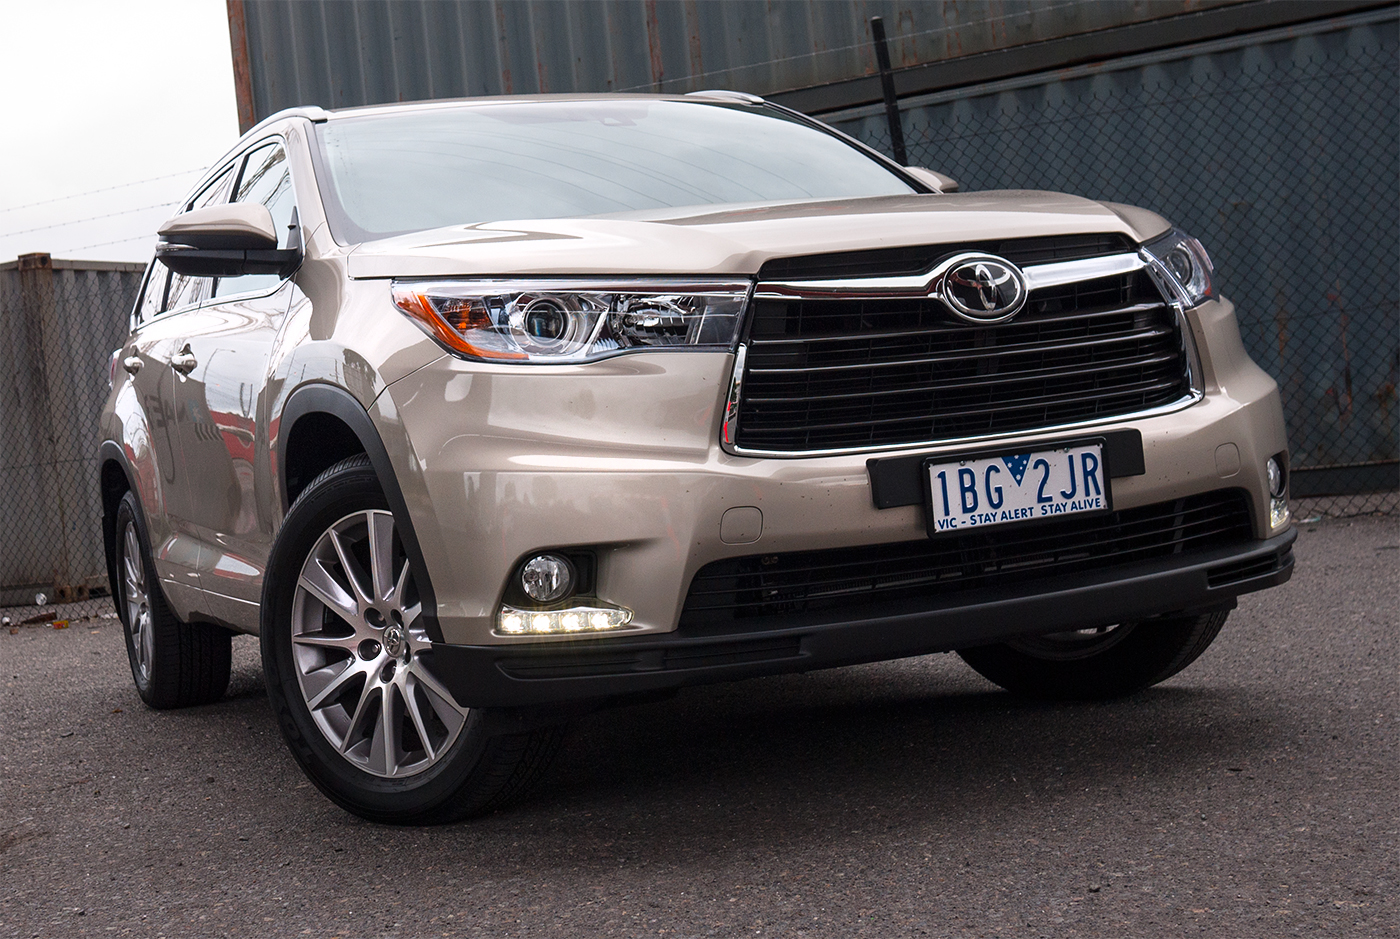 Toyota Calls For End To Luxury Car Tax, Reduces Prices